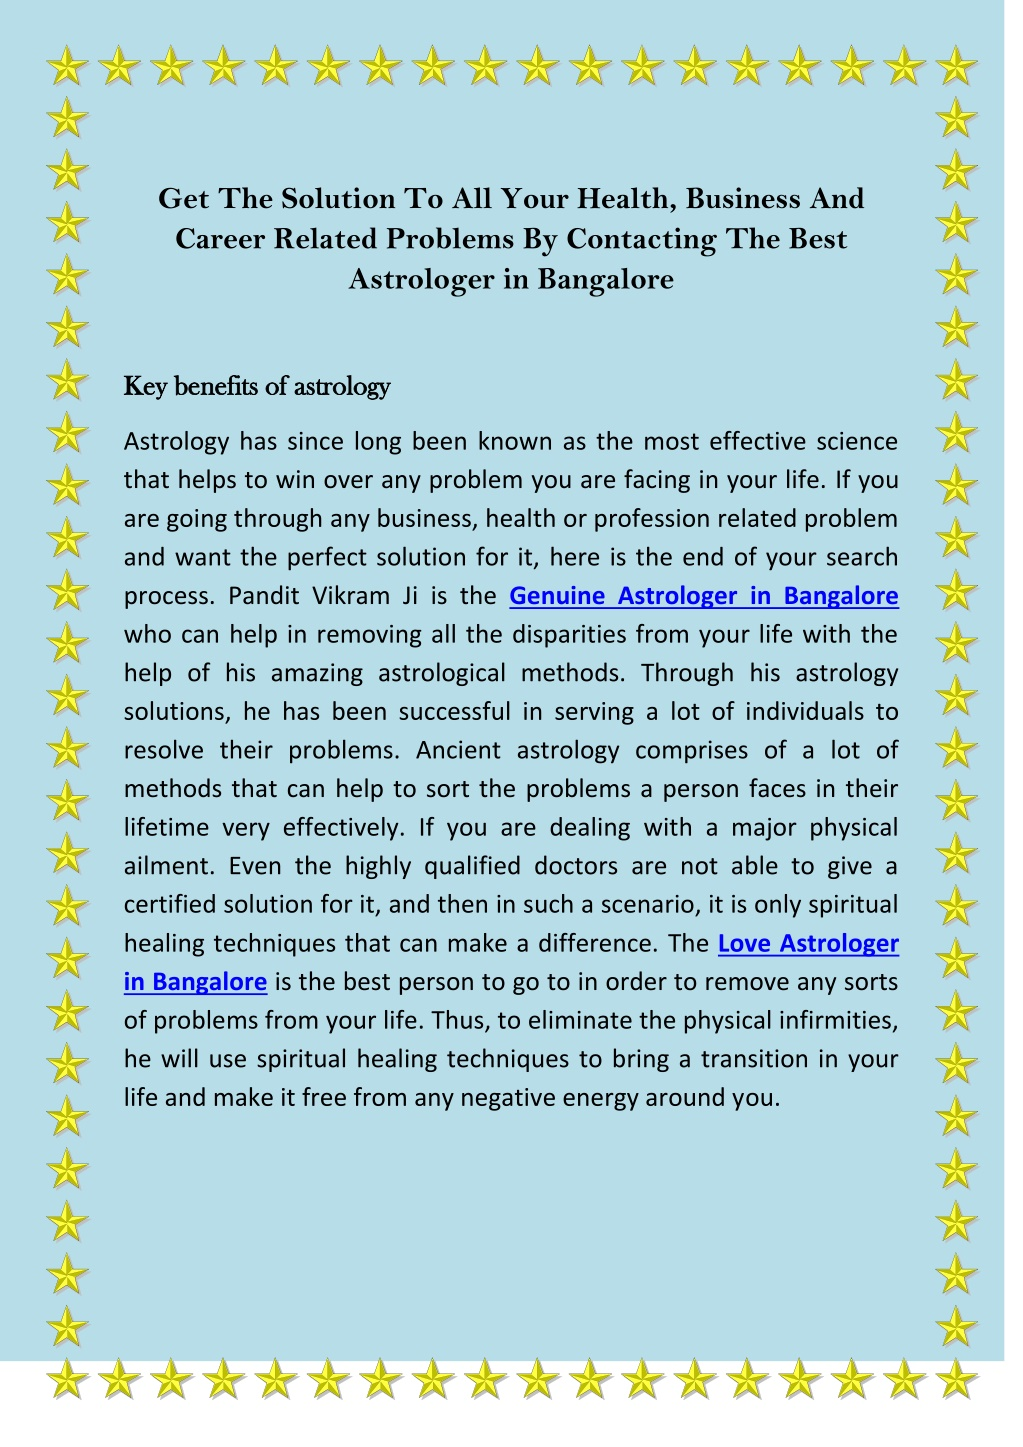 PPT - Get The Solution To All Your Health, Business And Career Related Problems By Contacting The Best Astrologer in Bangalore PowerPoint Presentation - ID:10118038